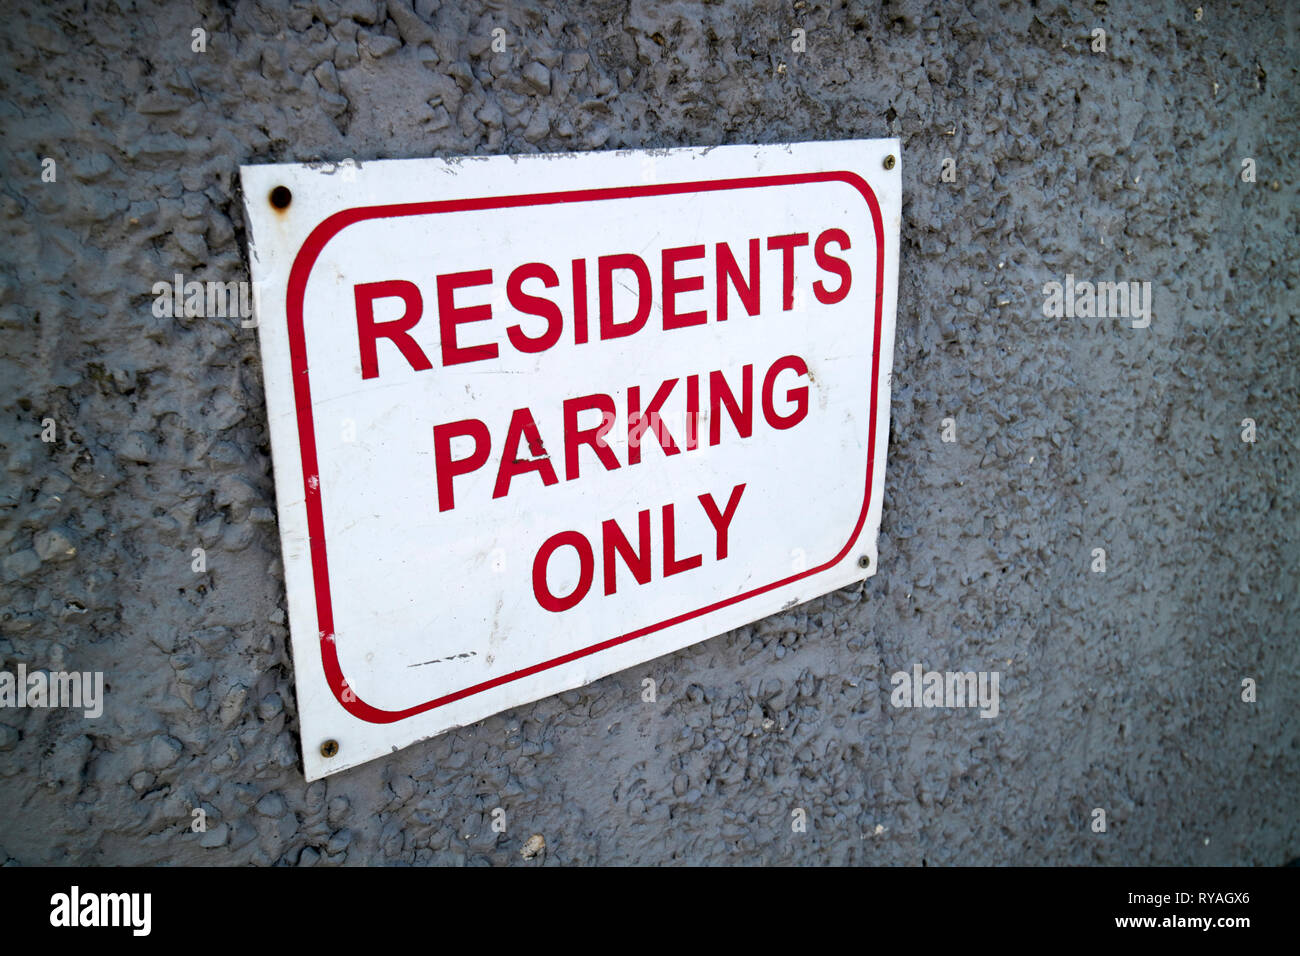 residents parking only sign on a garden wall Dublin Republic of Ireland Europe - Stock Image